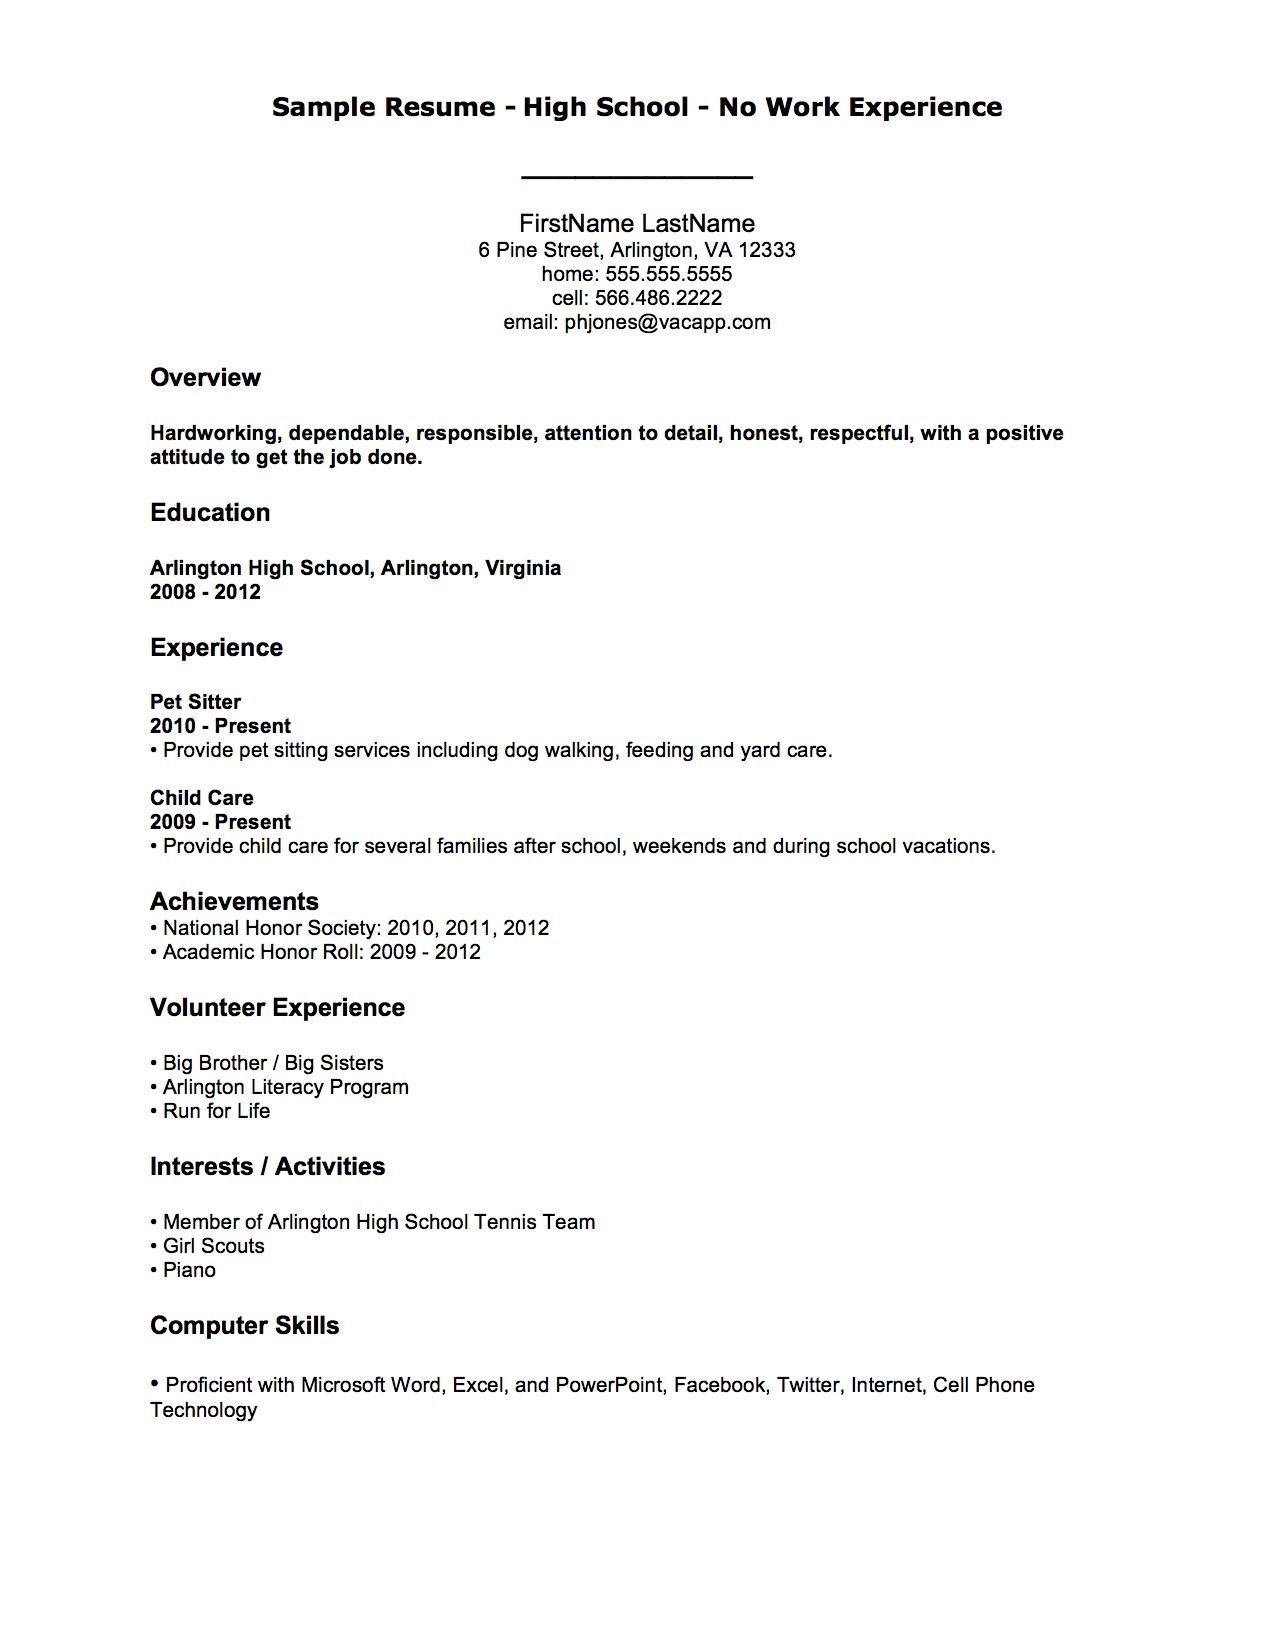 A Job Resume Sample Fascinating Resume Examples No Job Experience  Resume Examples  Pinterest .